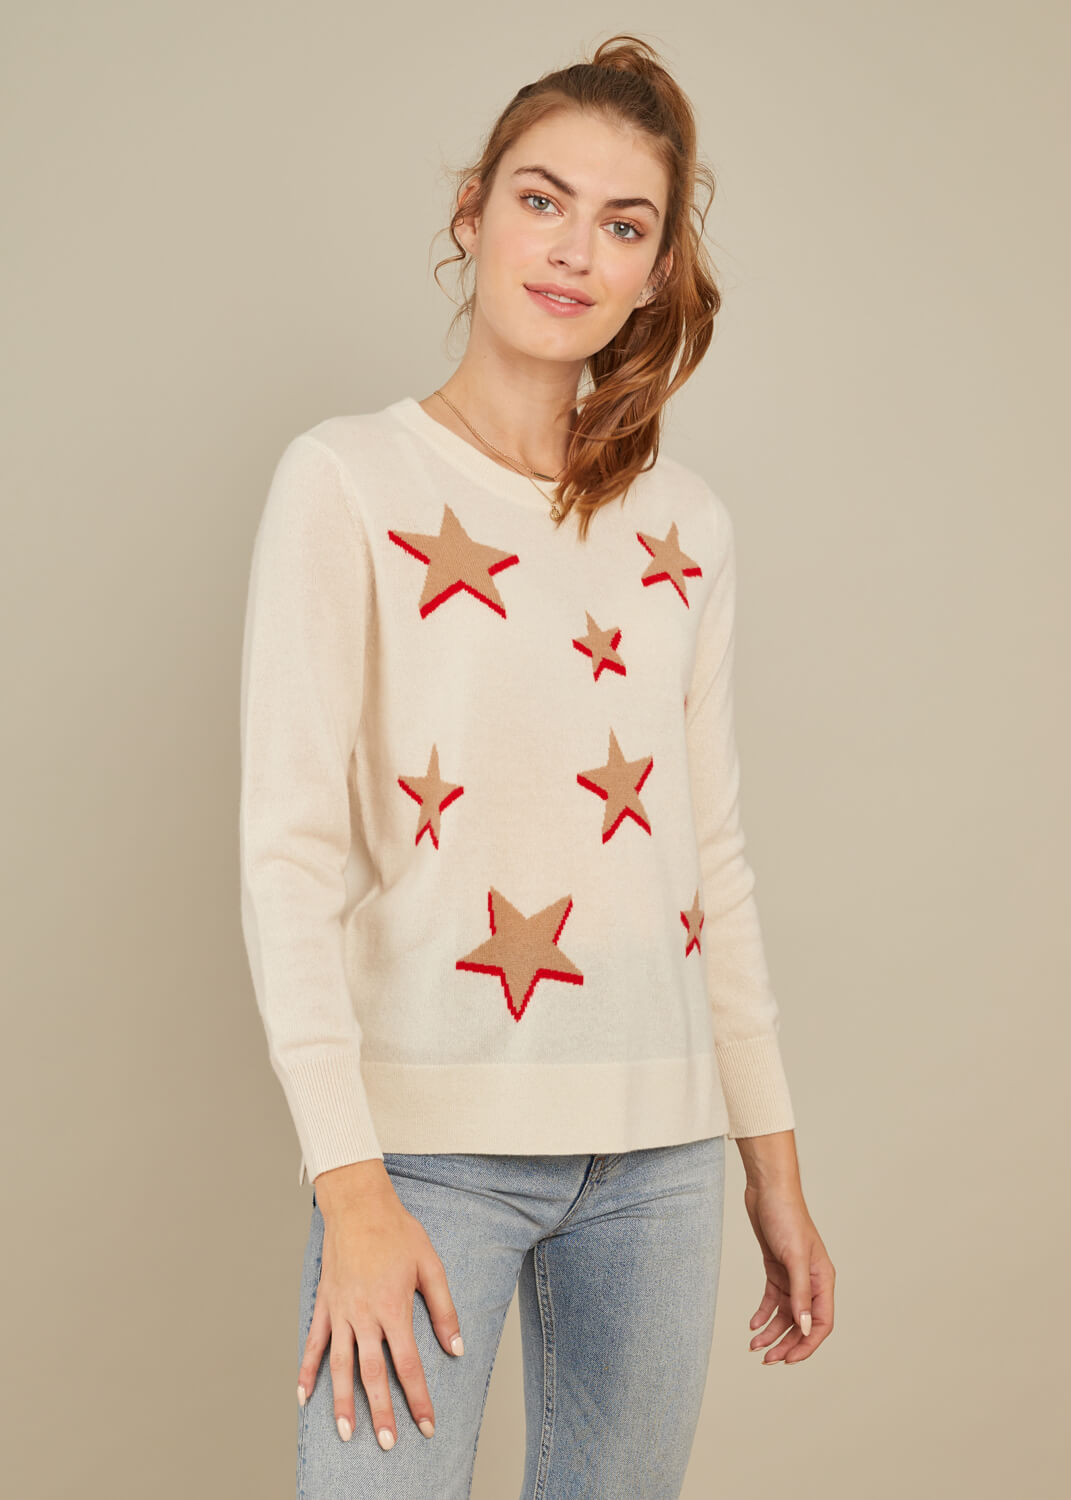 Sophie - Sweater - Stars - Cream